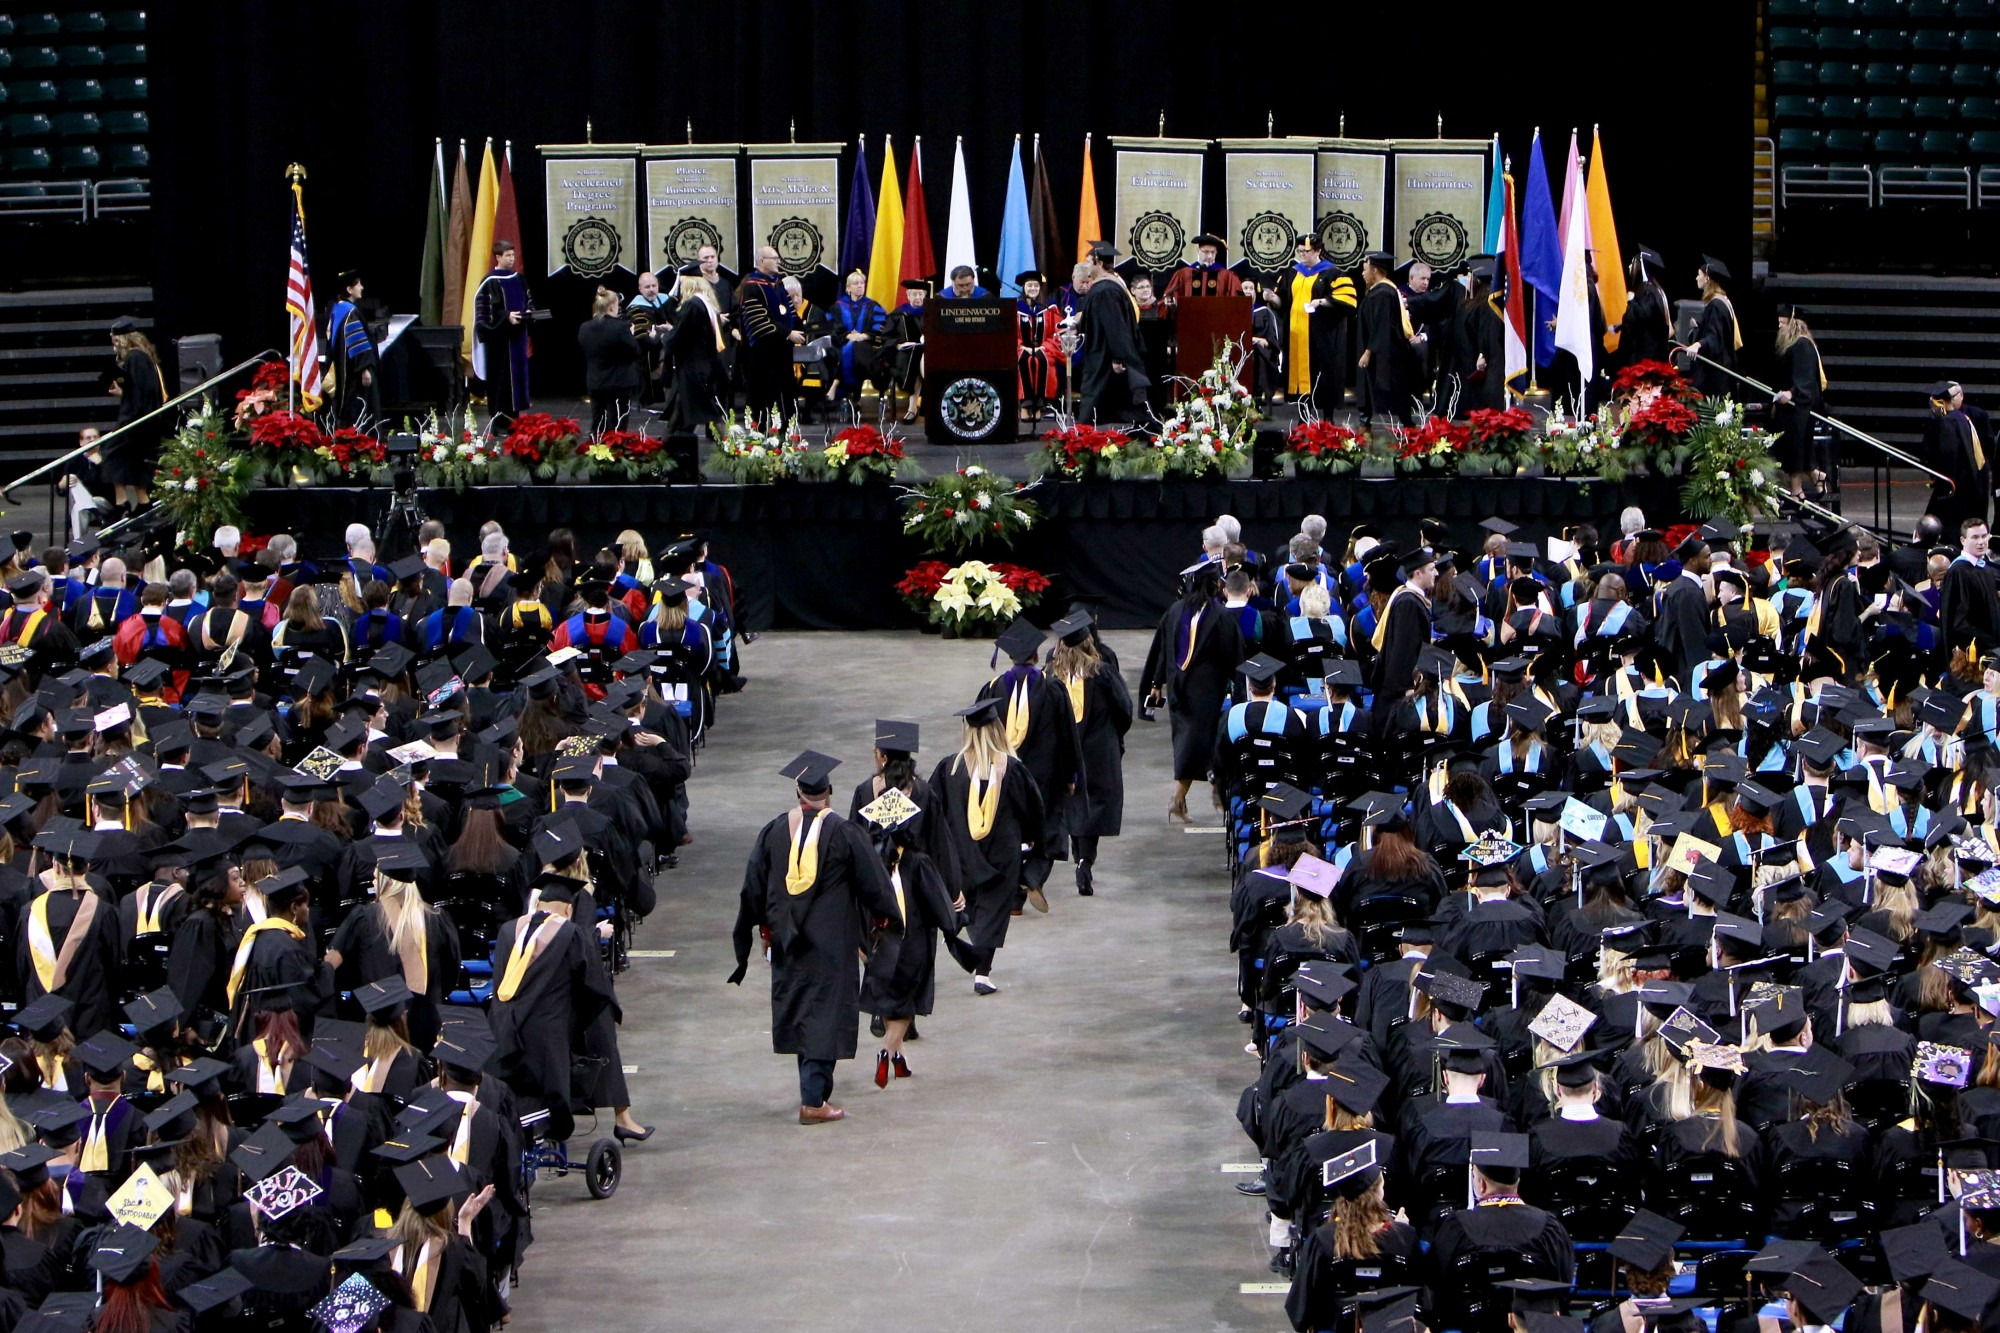 Lindenwood University Commencement Graduation